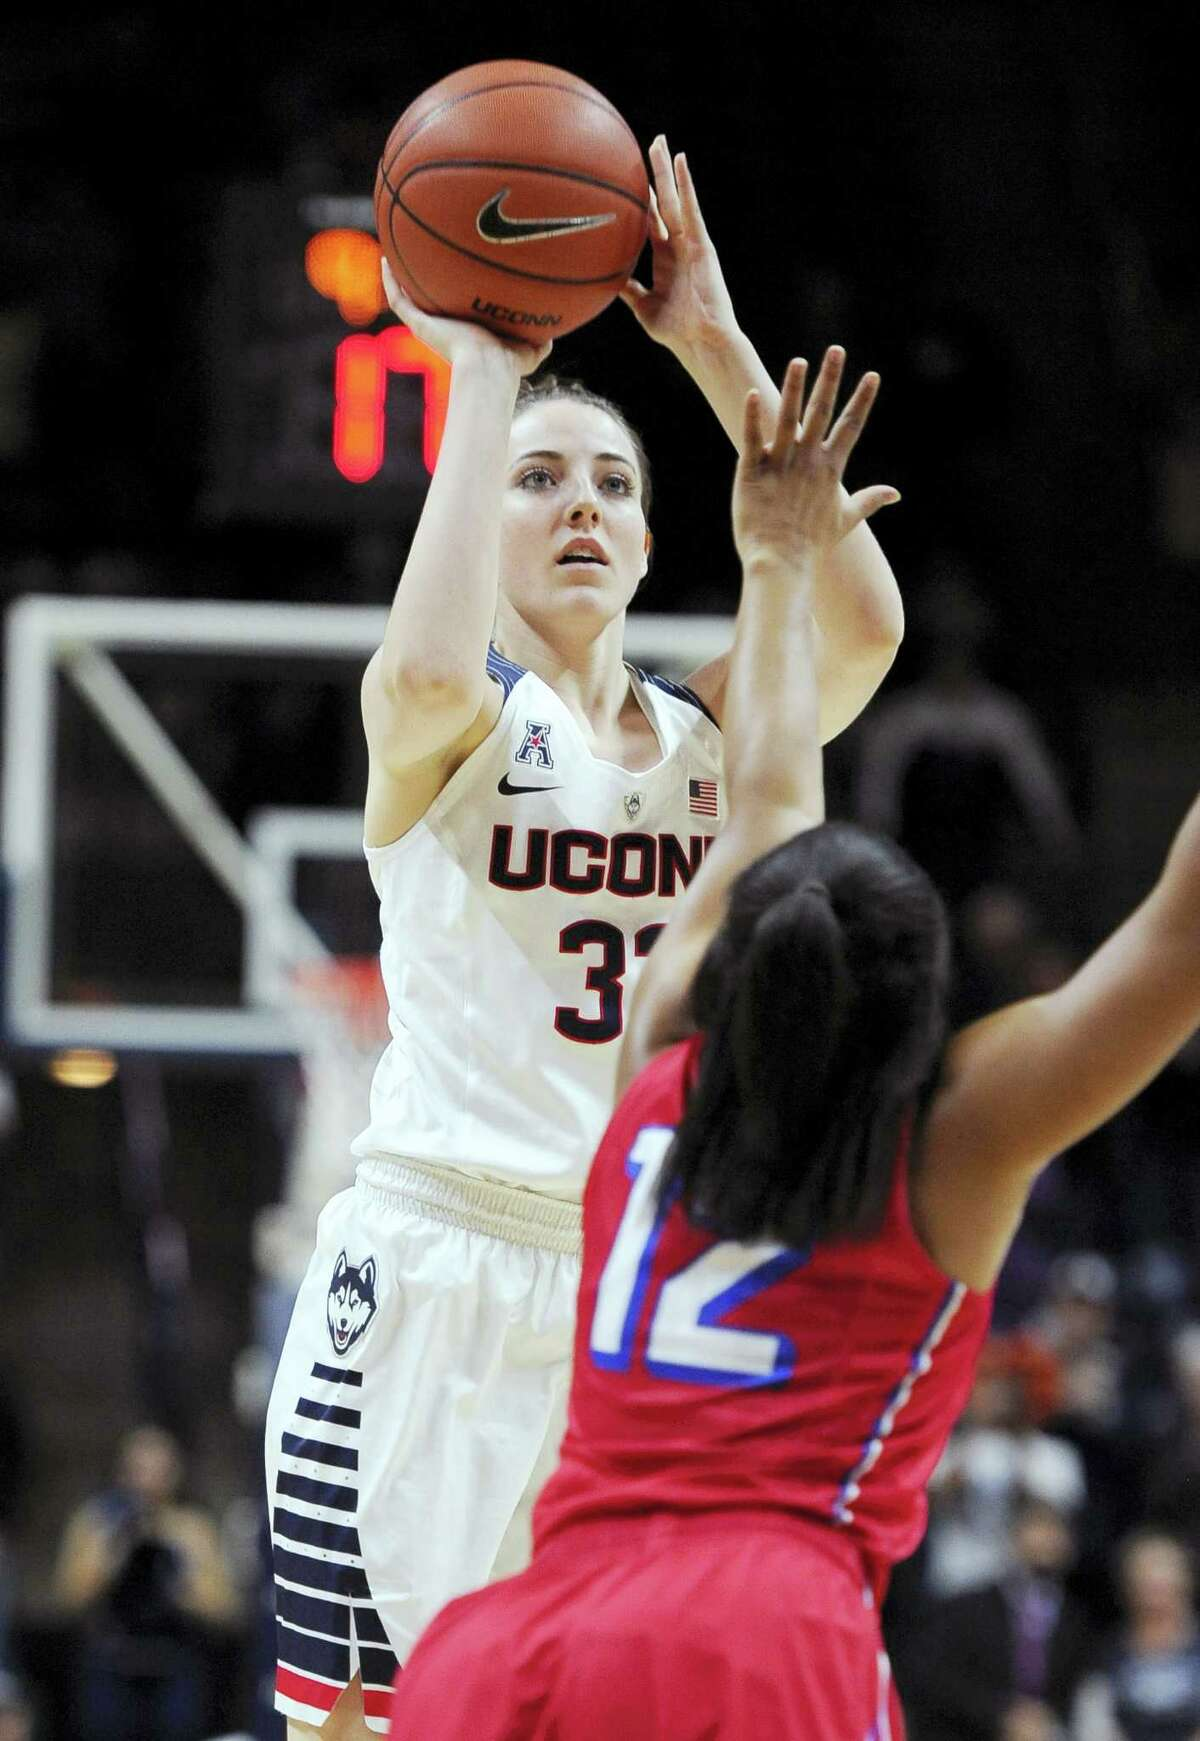 UConn freshman Katie Lou Samuelson shoots over SMU's Morgan Bolton during the first half Wednesday en route to tying her career high with 21 points.